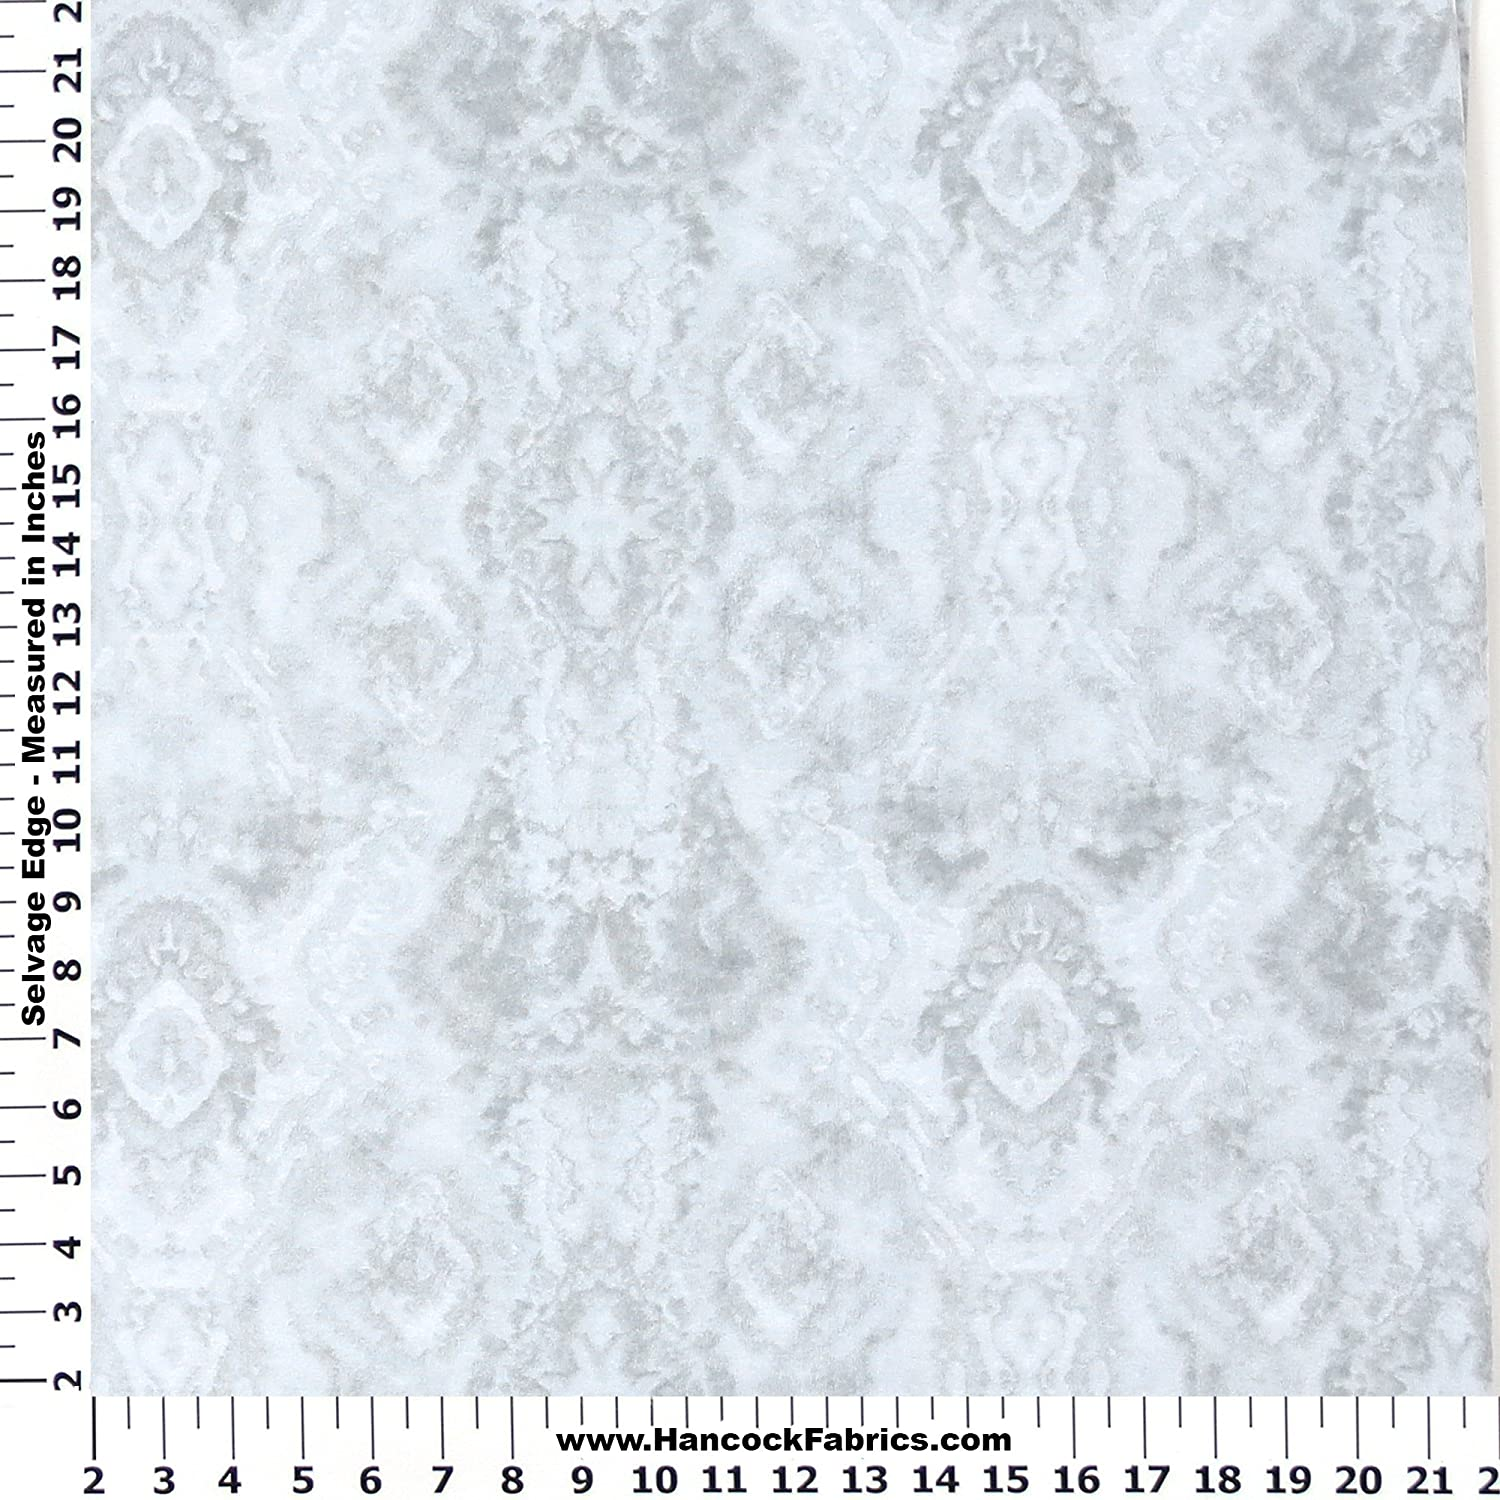 Blizzard Blender Grey Flannel Fabric - Sold By the Yard